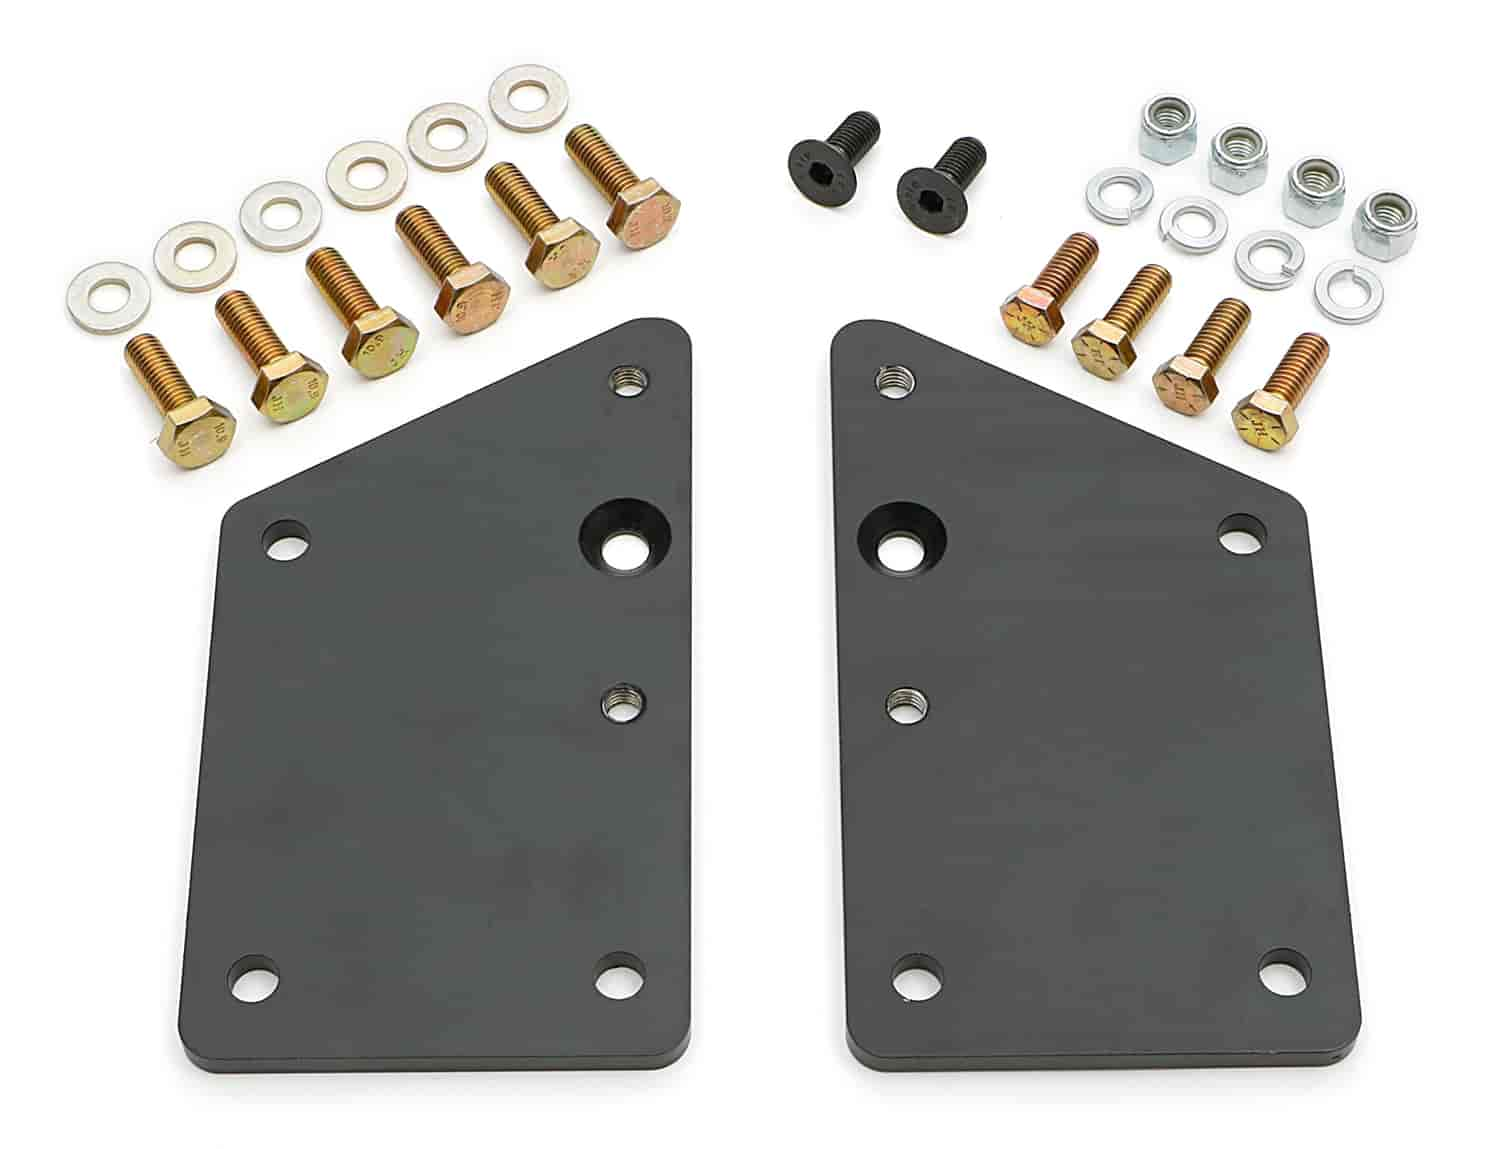 Trans Dapt 4572 - Trans Dapt Engine Swap Motor Mounts and Kits